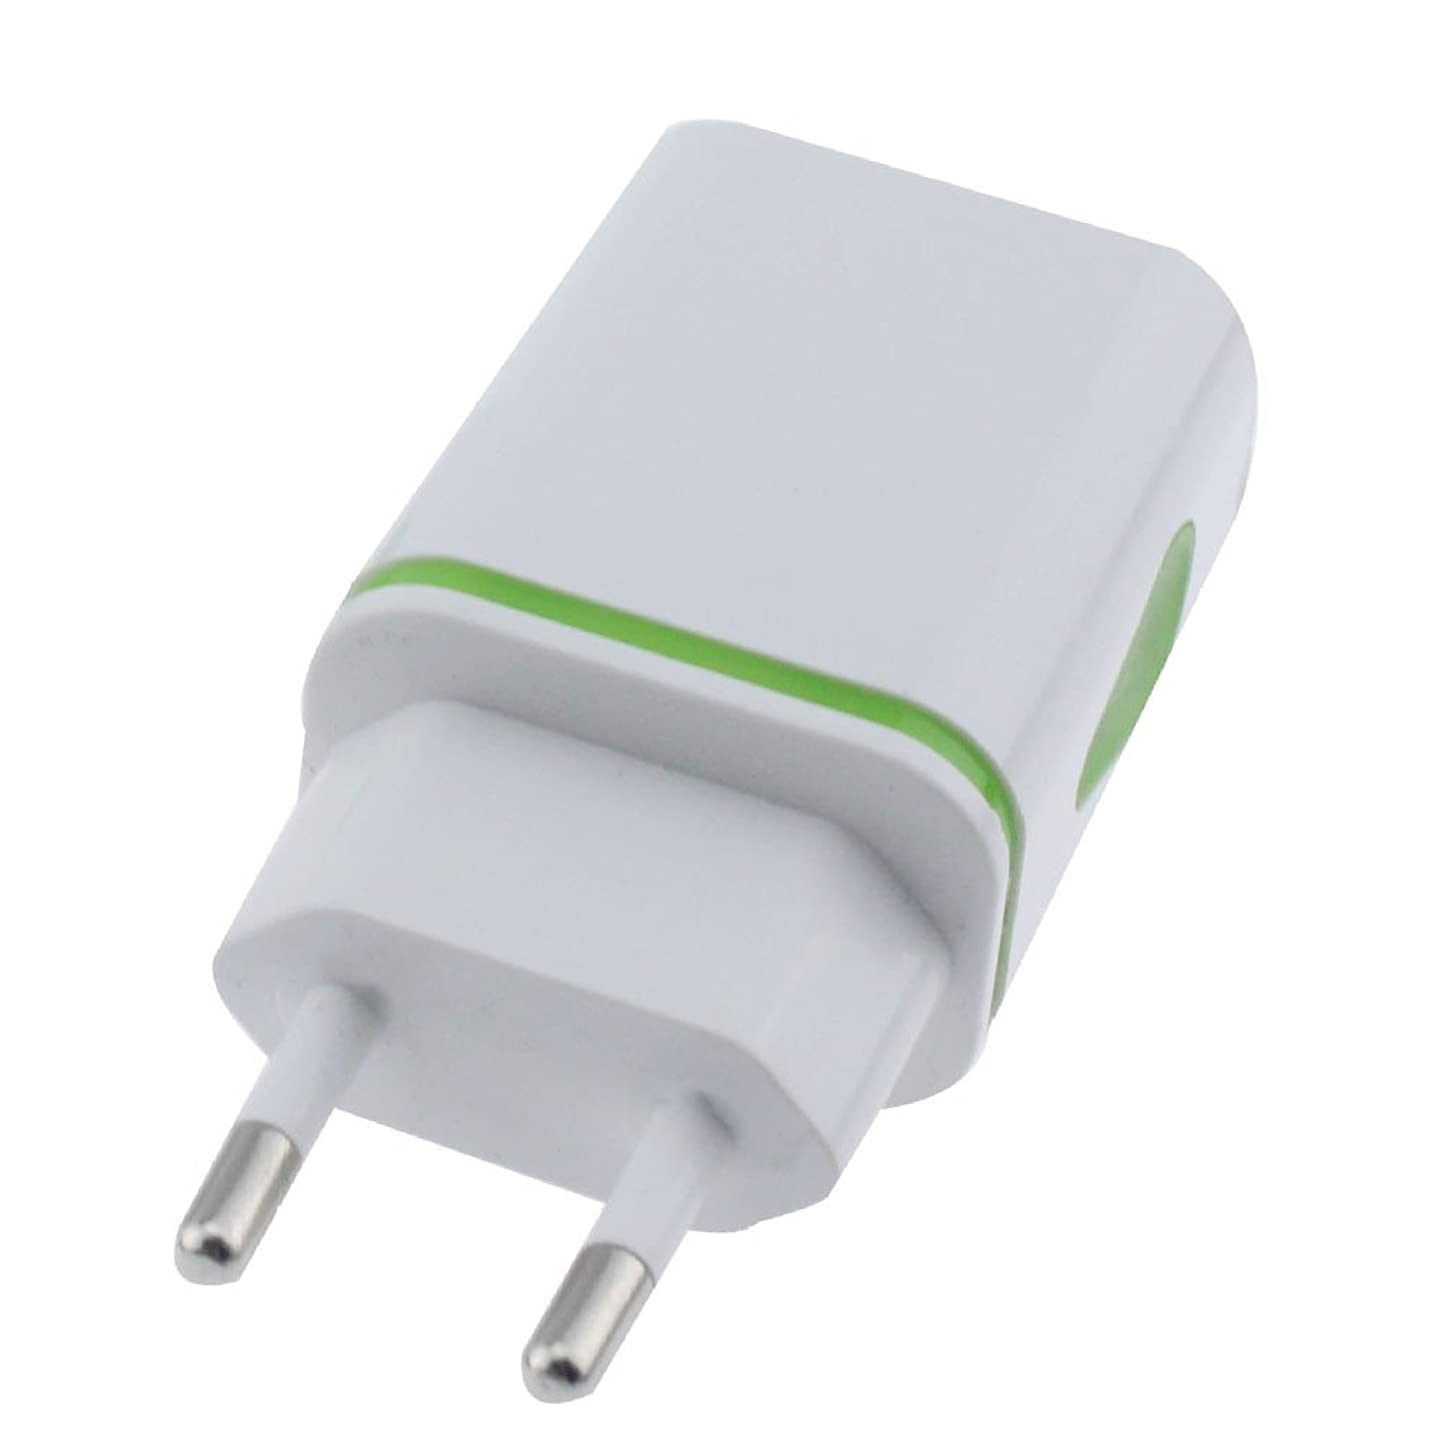 USB Charger Cable, Sacow EU Plug LED USB AC Charger Adapter 2 Ports Travel Charger for Samsung Galaxy Note 8 Features: (Green)